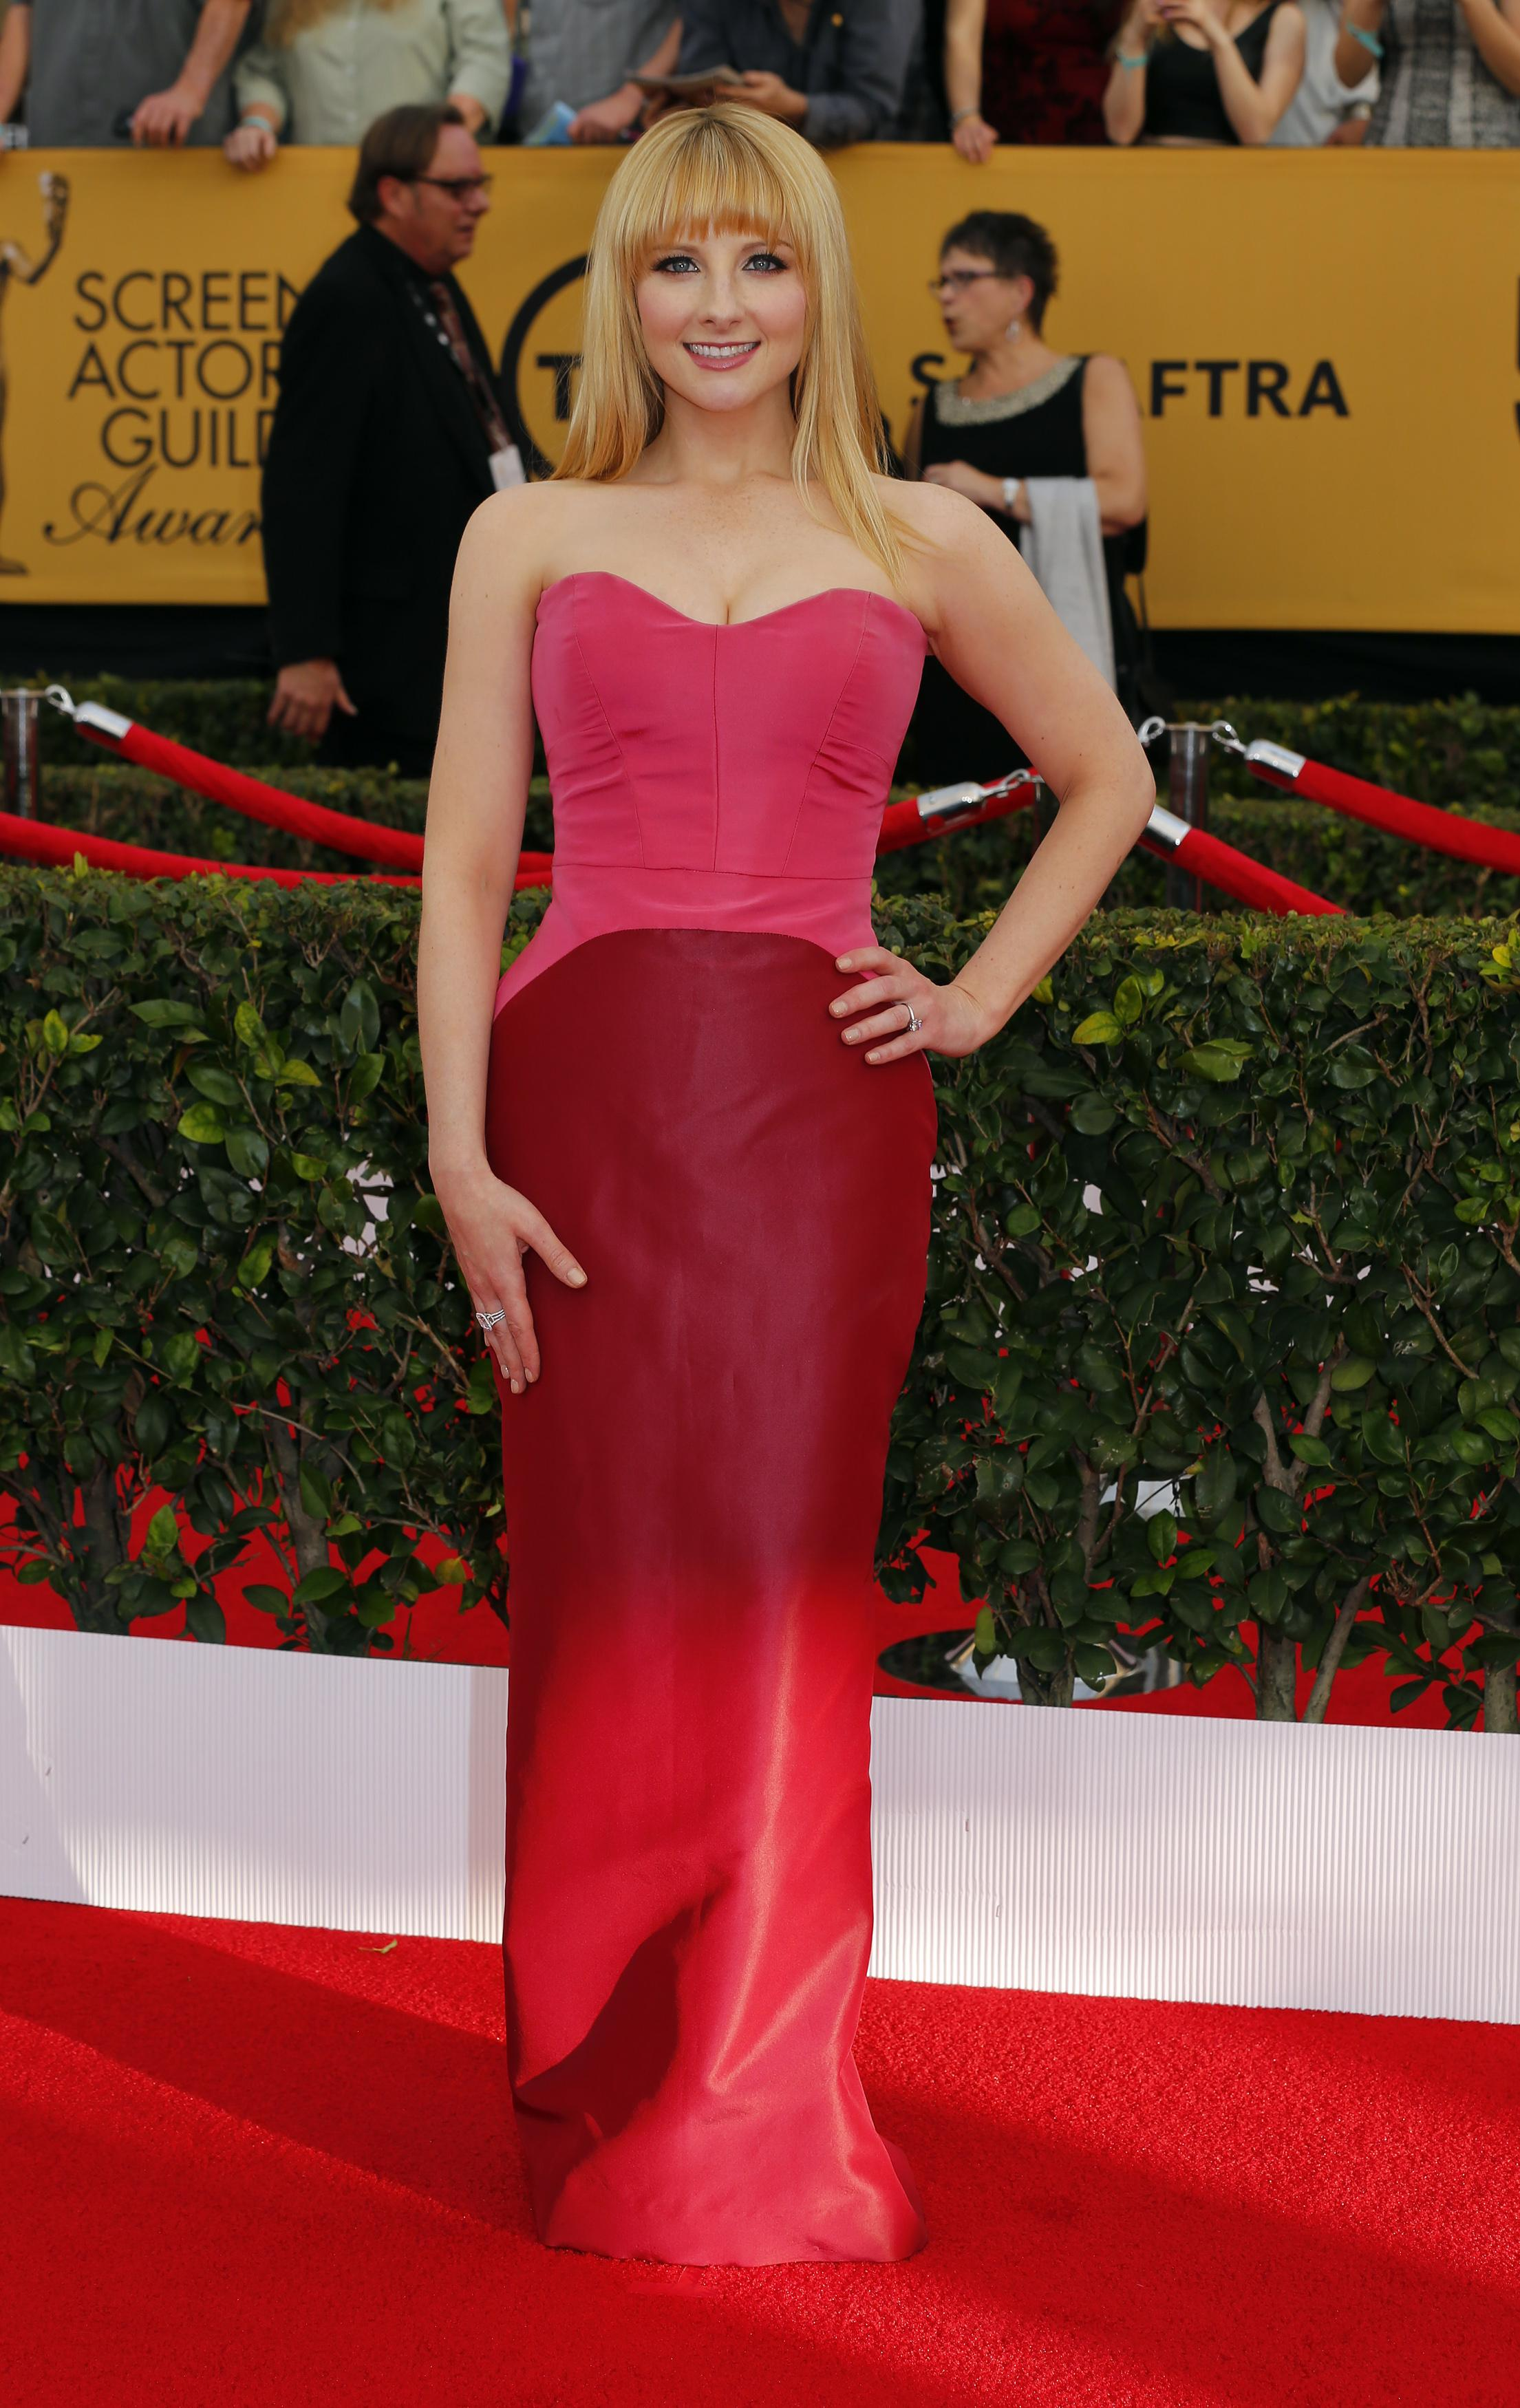 Sag Awards 2015 Red Carpet Recap Photos Of The Best And